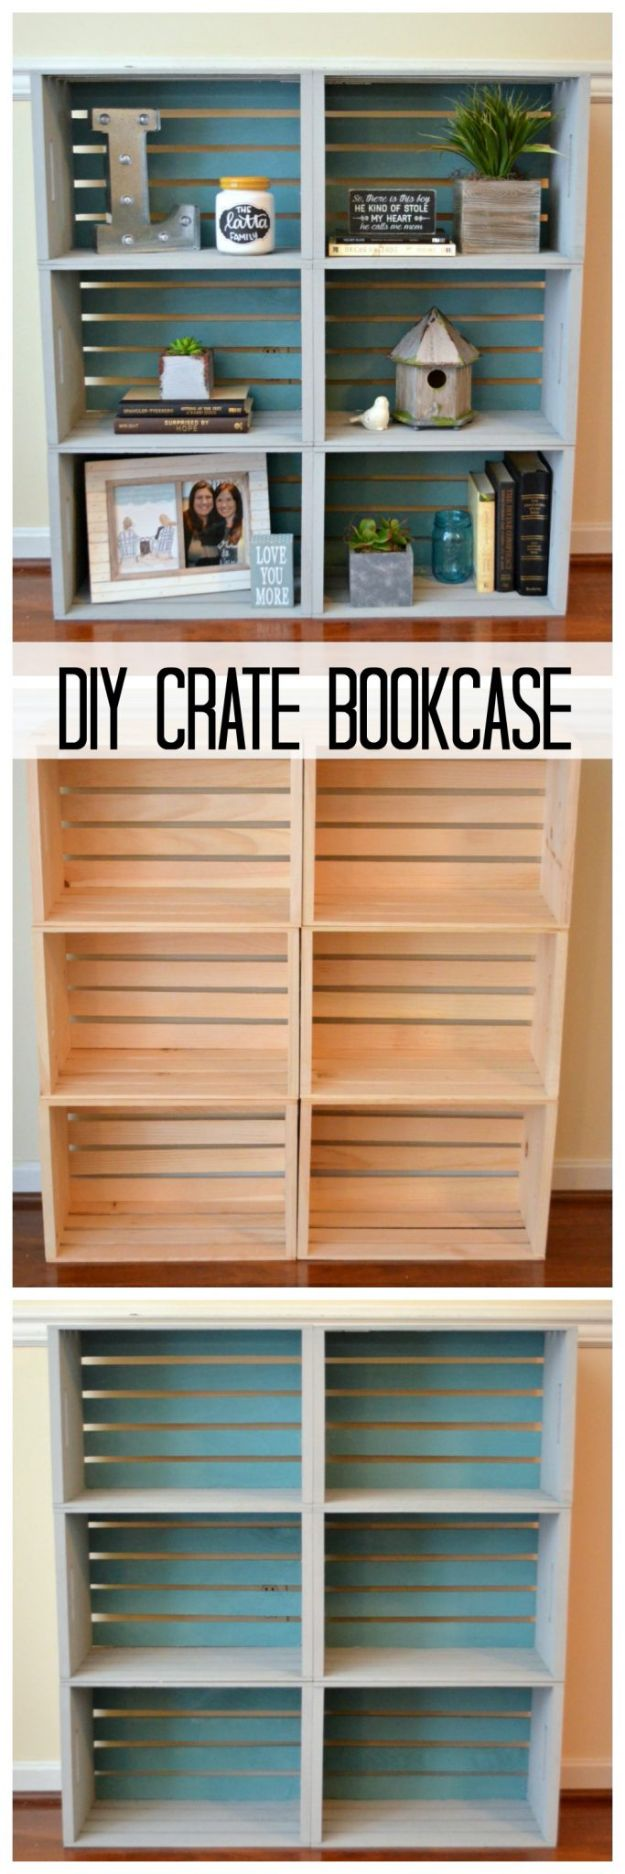 DIY Crate Bookcase - Painted Furniture Ideas - DIY Shelving and Organization Ideas for Home - Cheap Bookcases to Make